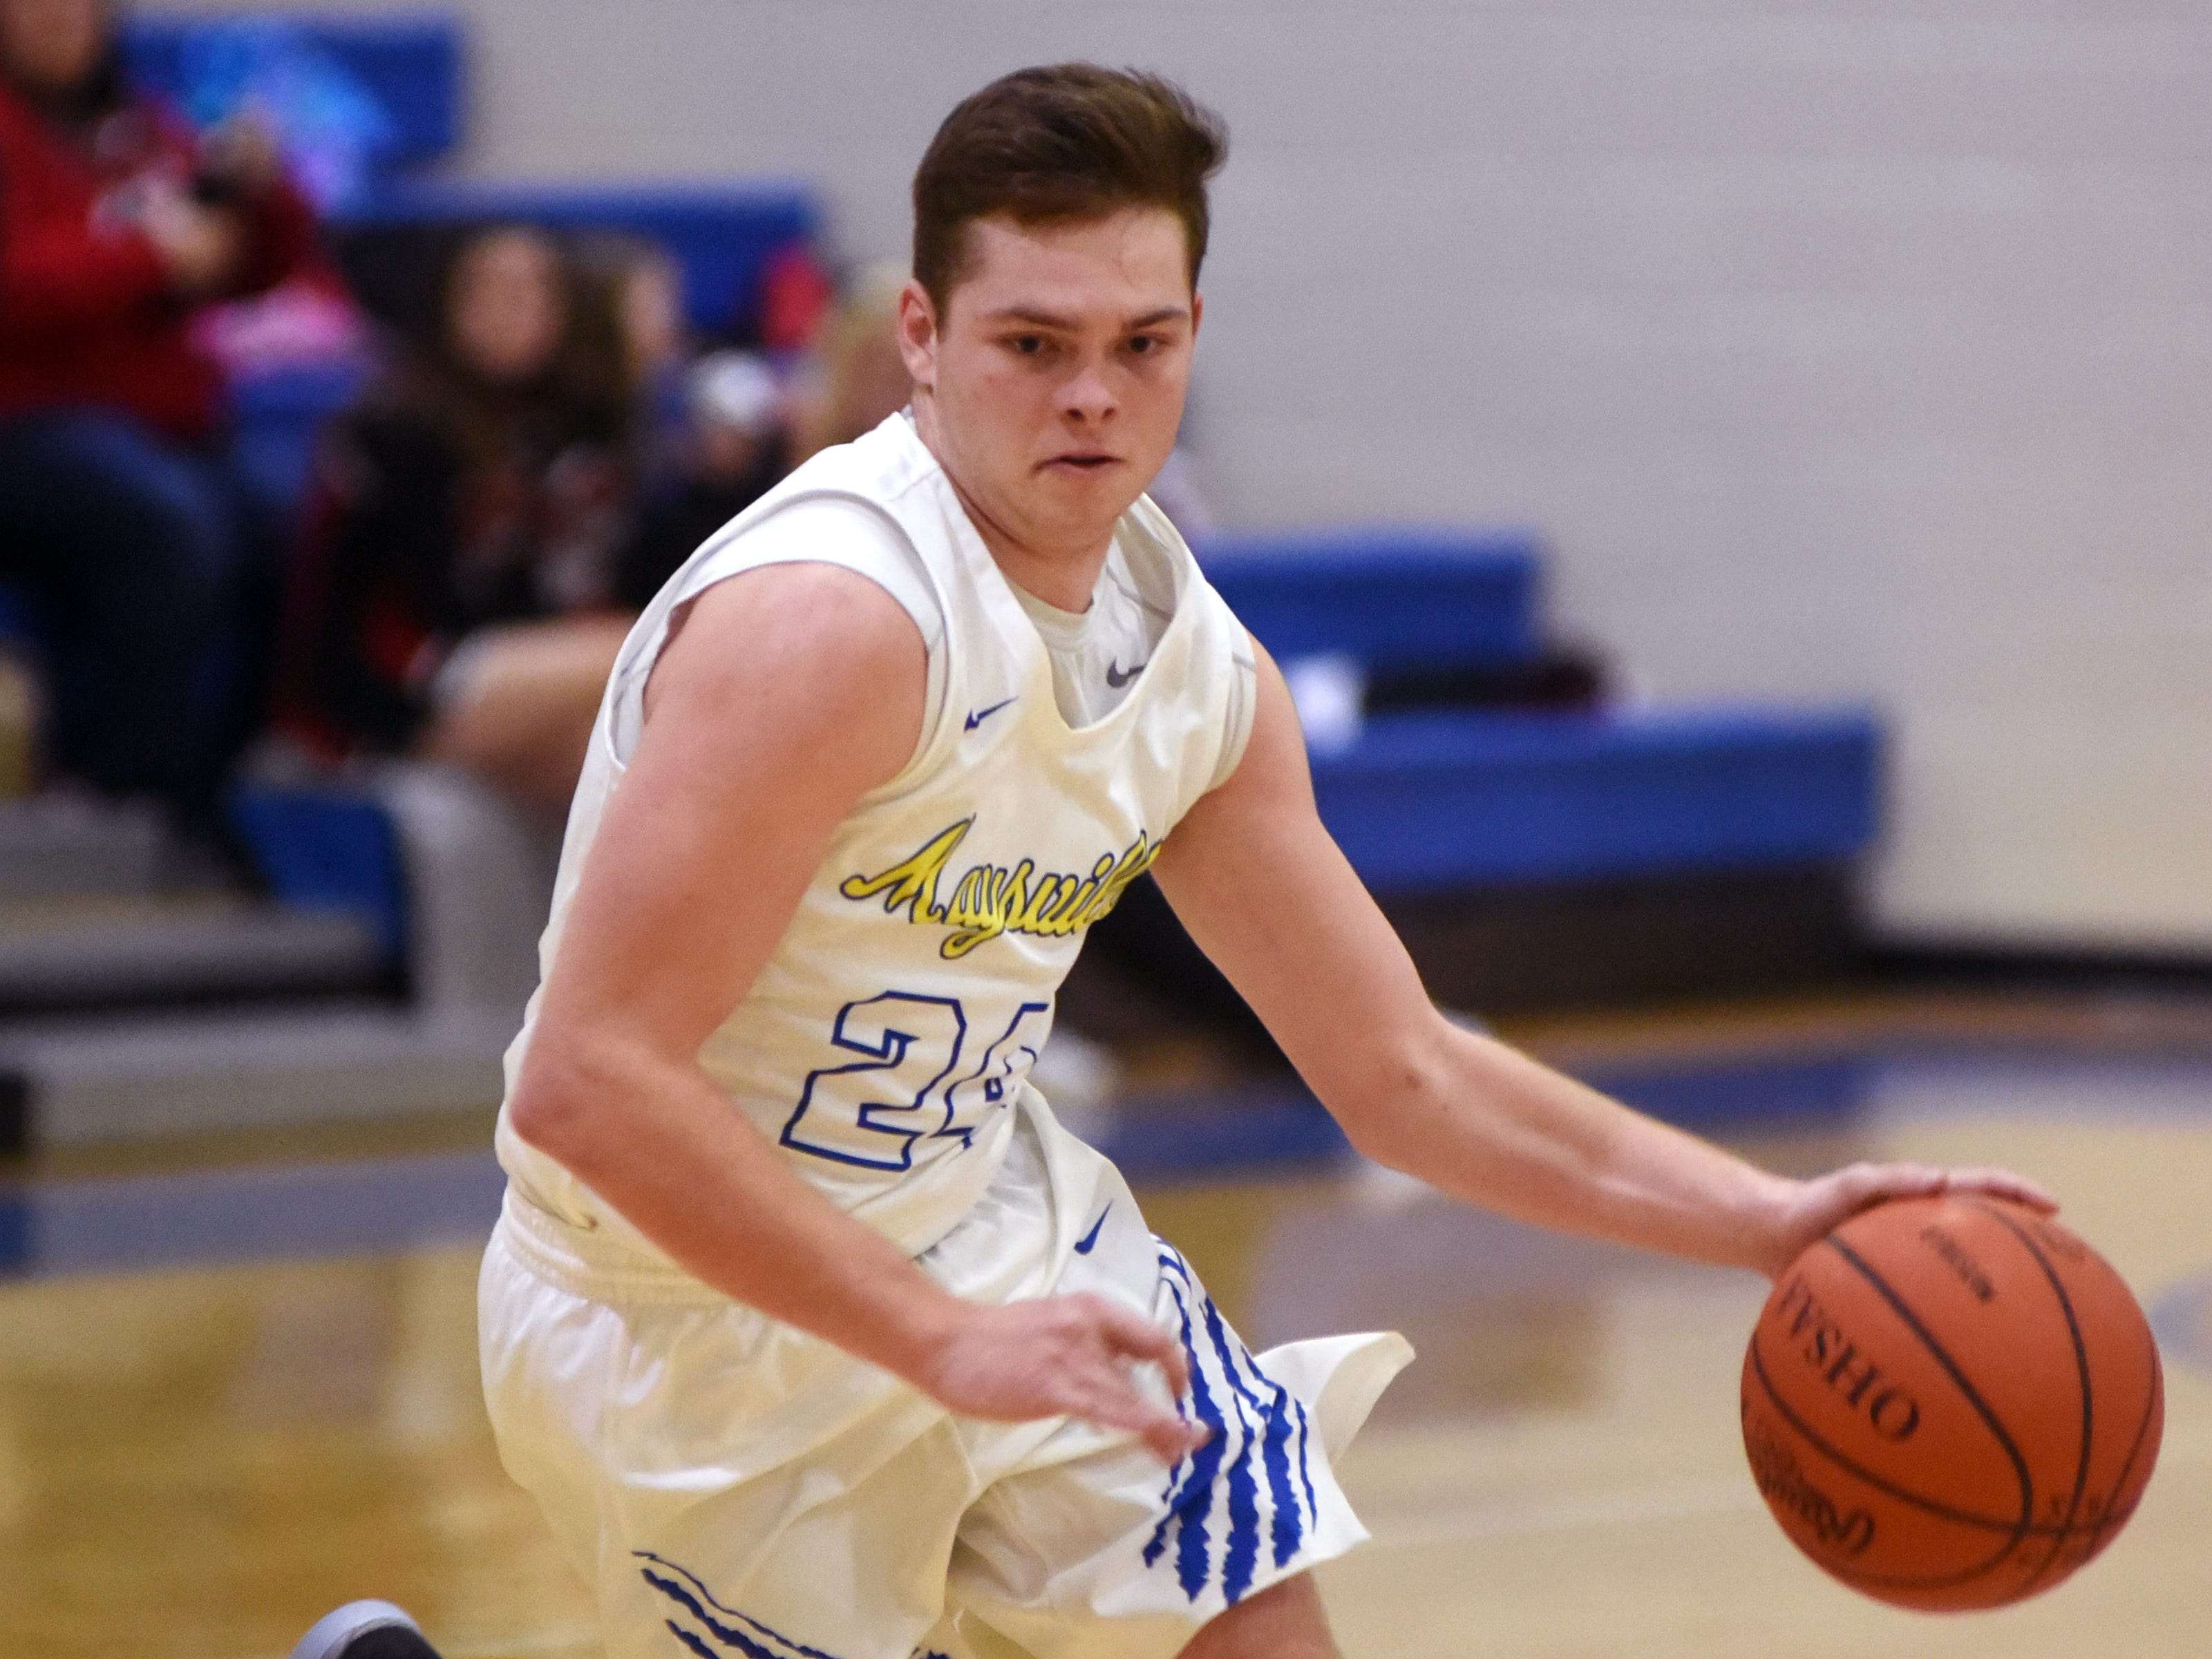 Kaiden Kerby looks for driving room during Maysville's game against Coshocton on Saturday night in Newton Township.